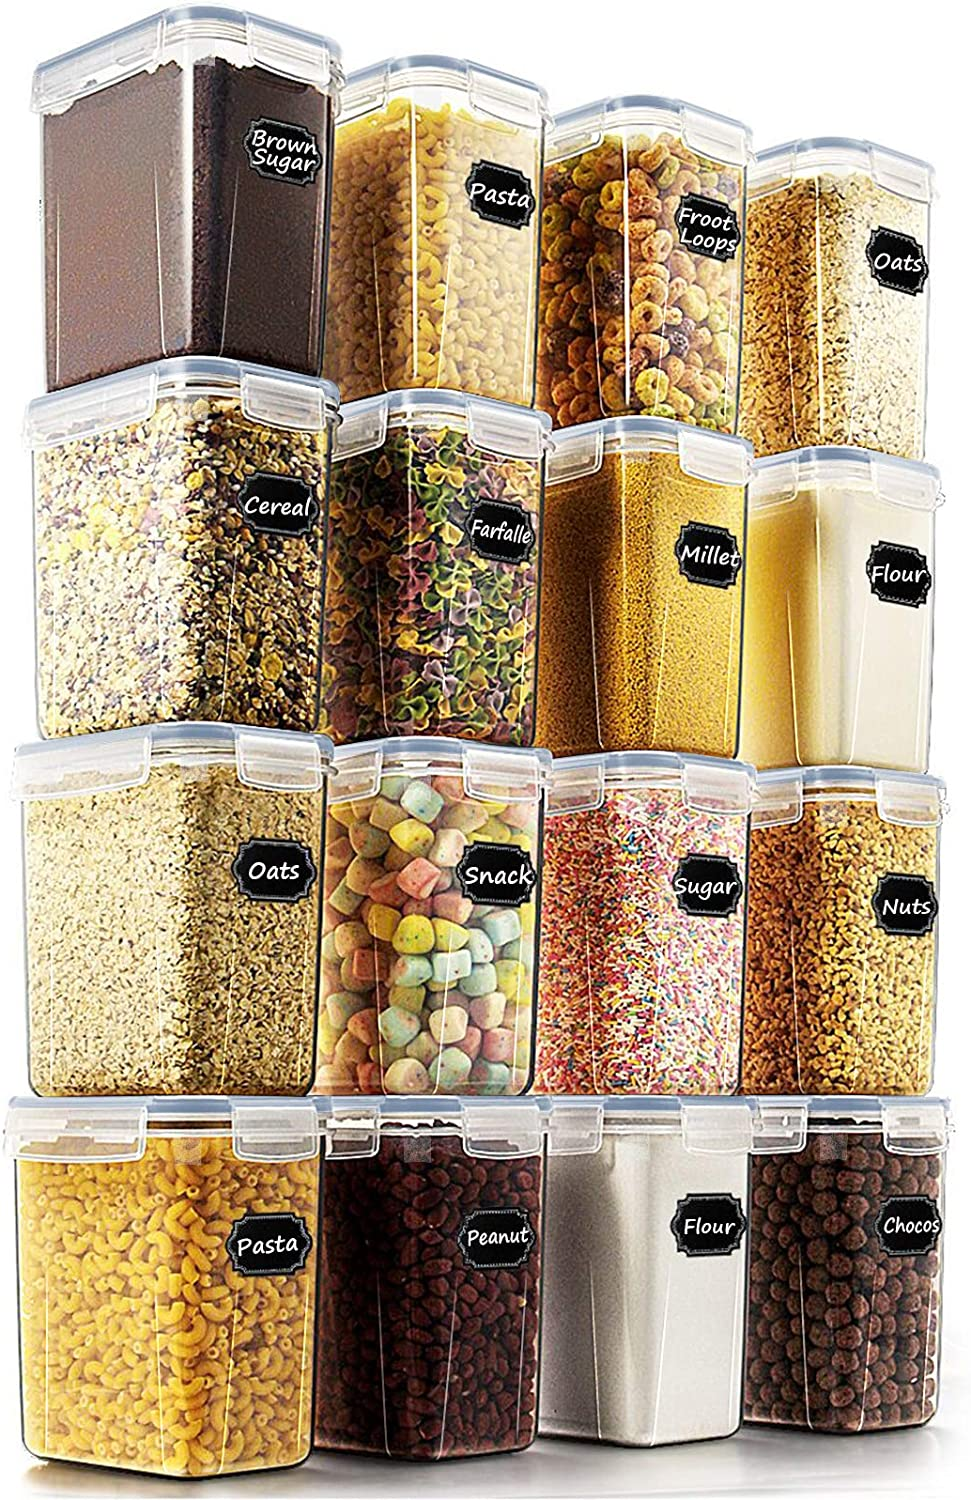 Airtight Food Storage Containers - Wildone Cereal & Dry Food Storage Container Set of 16 [1.6L /1.5qt] with Grey Lids for Flour and Baking Supplies, Leak-proof & BPA Free, with 20 Labels & 1 Marker